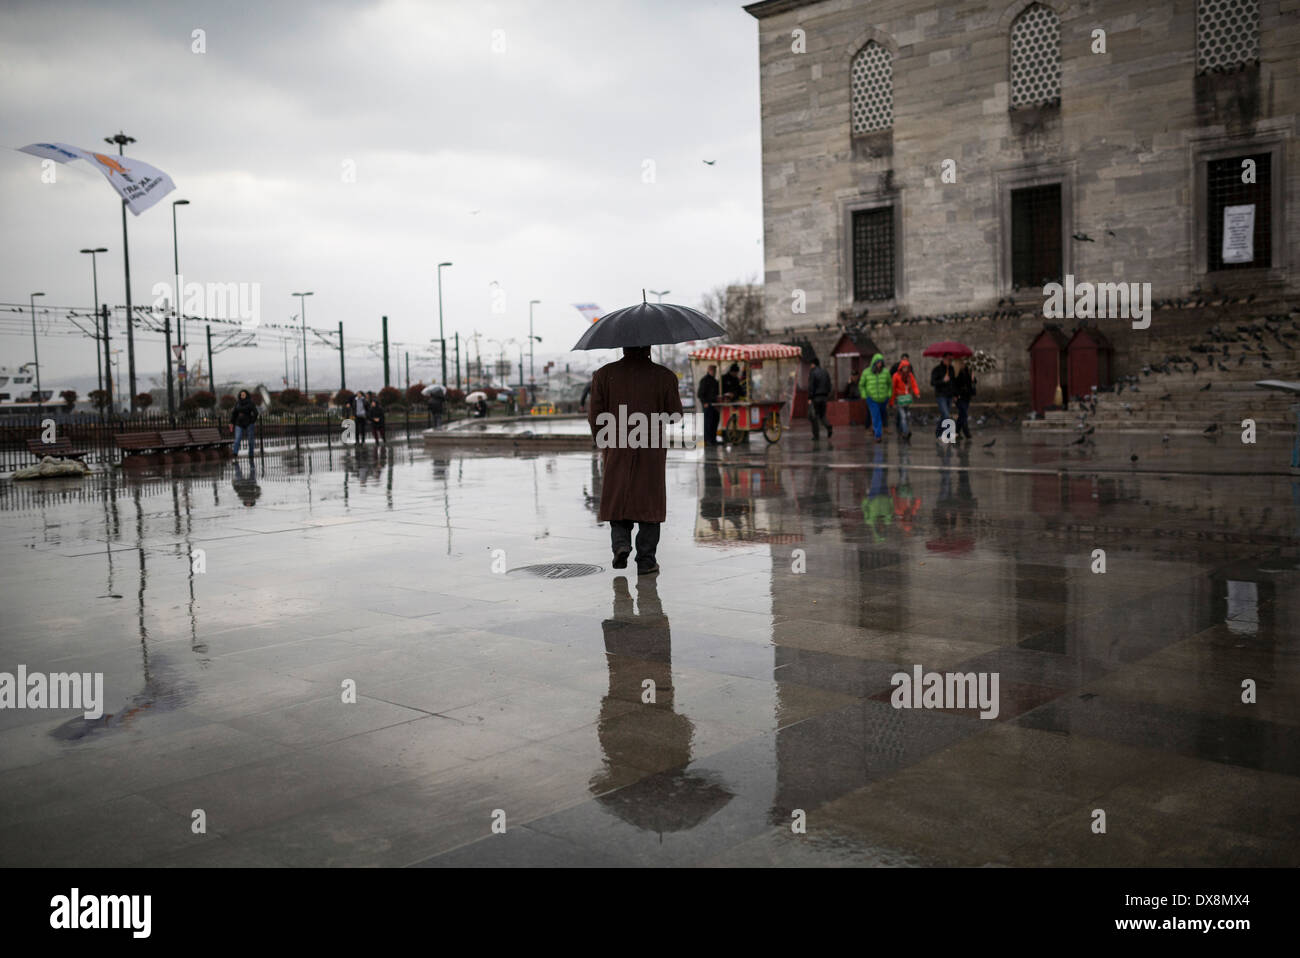 A man protect himself with umbrella as walks past the New Mosque in Eminonu district in Istanbul, Turkey on March 2014. - Stock Image